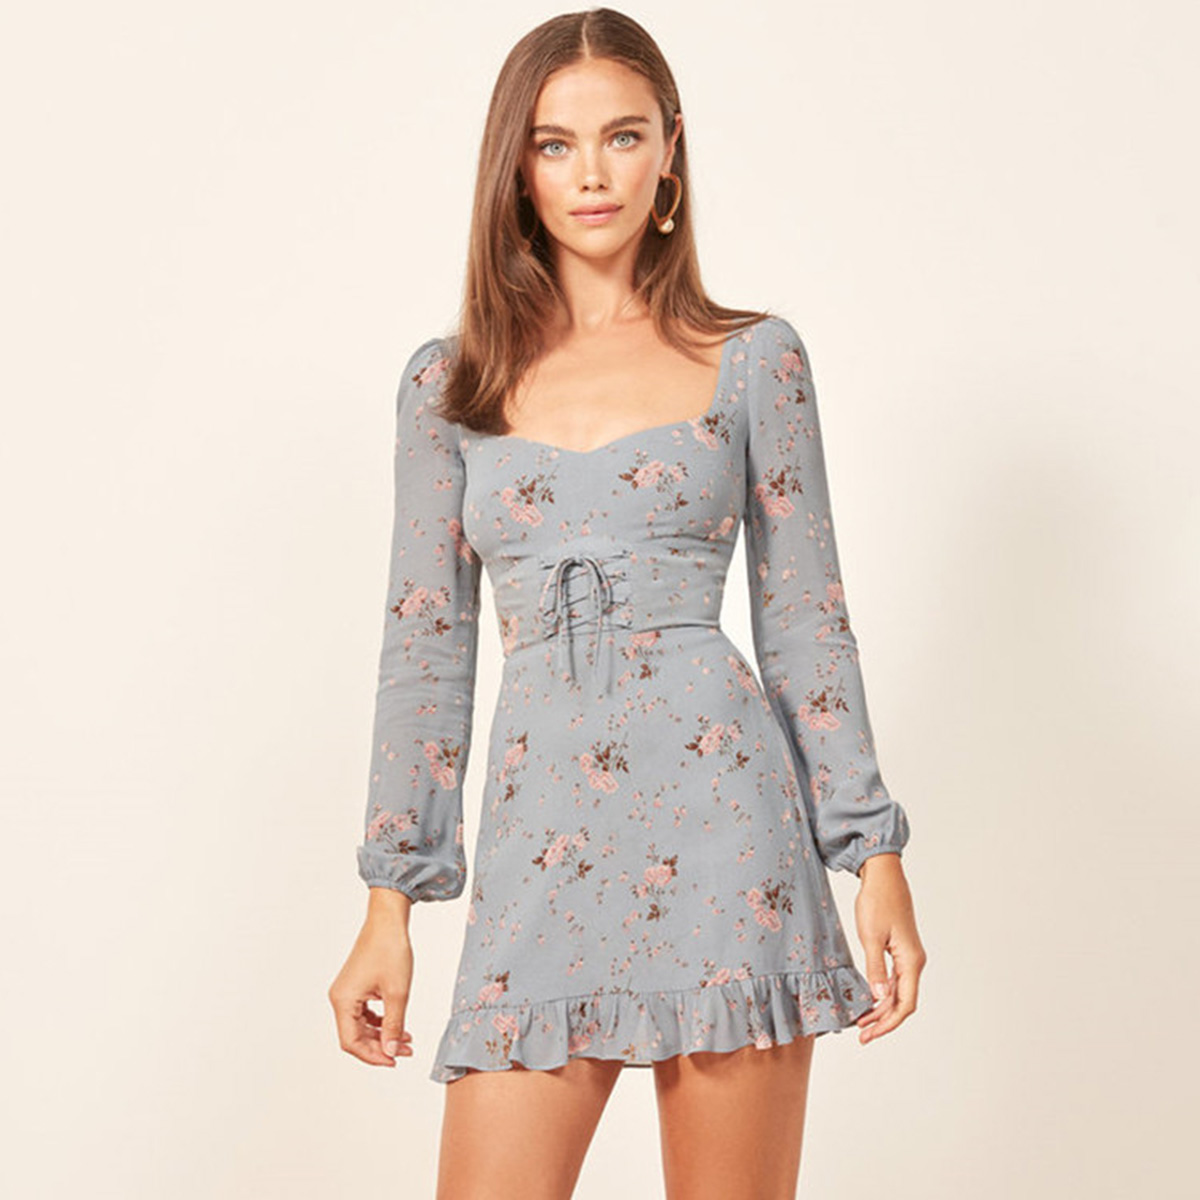 Floral Print Retro Mini <font><b>Dress</b></font> <font><b>Women</b></font> <font><b>2018</b></font> Autumn <font><b>Summer</b></font> Long Sleeve Backless <font><b>Sexy</b></font> Short <font><b>Dress</b></font> Ladies <font><b>Boho</b></font> Hippie Party <font><b>Dresses</b></font> image